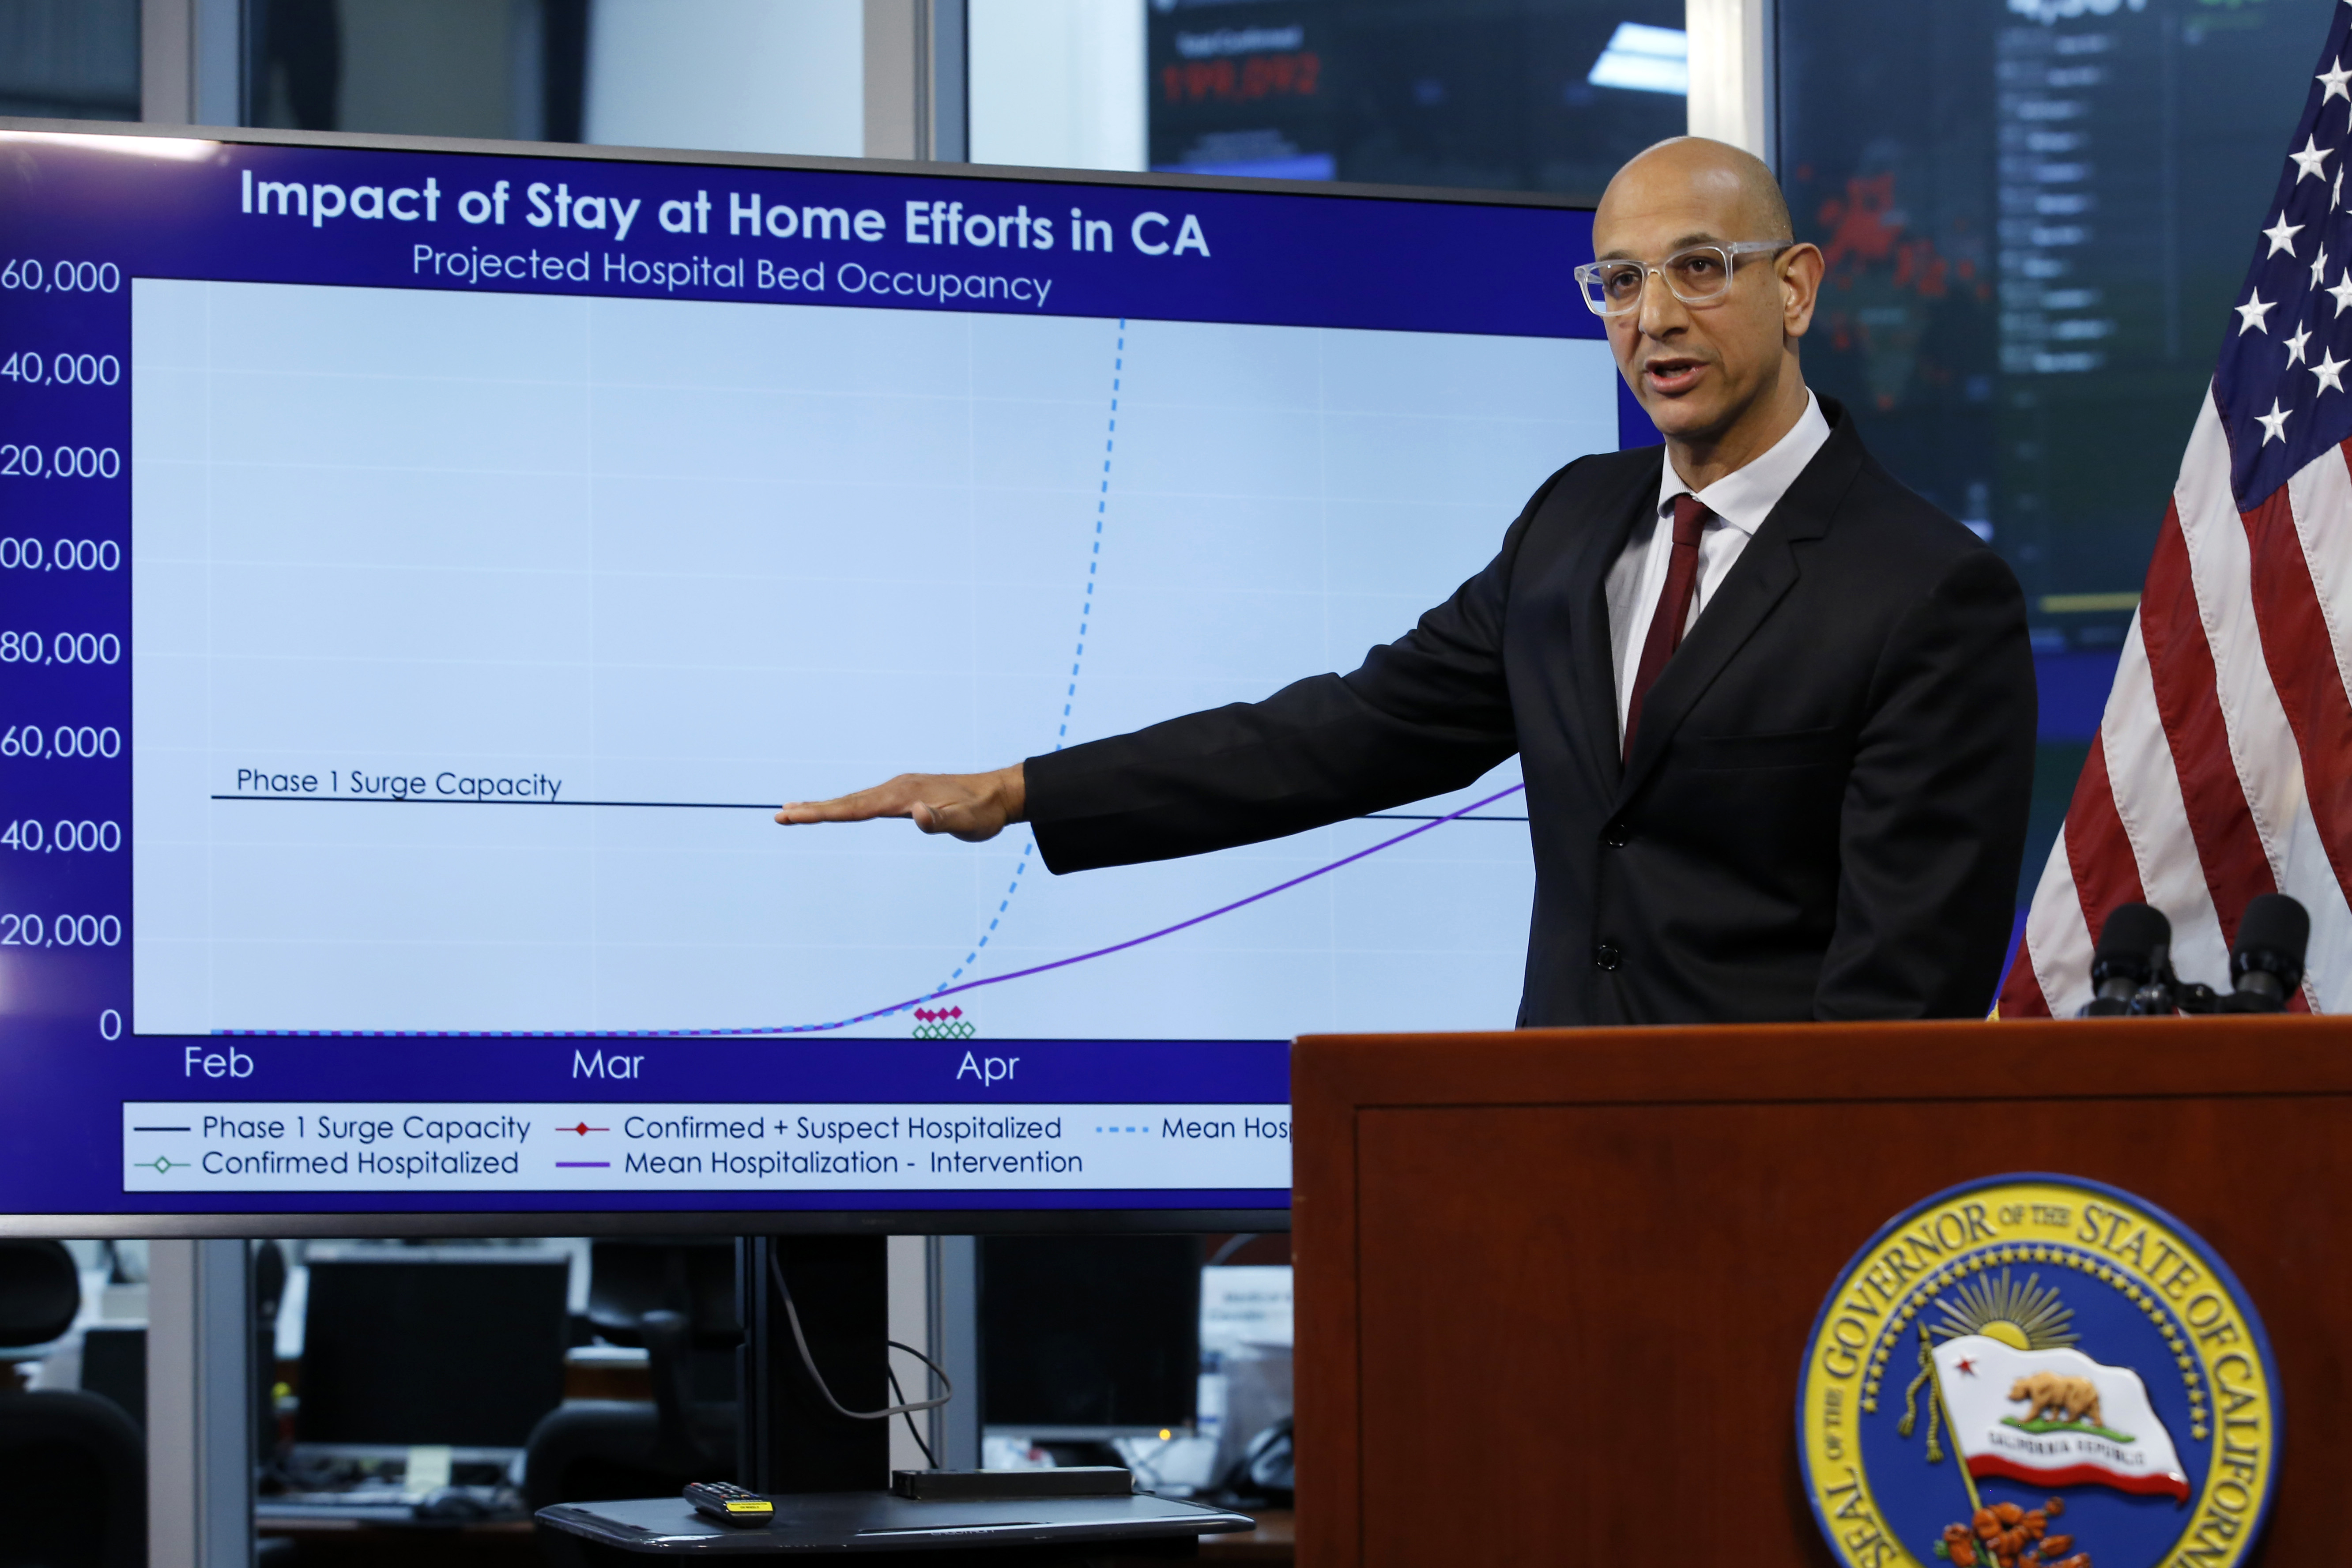 In this photo, Dr. Mark Ghaly, secretary of the California Health and Human Services, gestures to a chart showing the impact of the mandatory stay-at-home orders during a news conference ,at the Governor's Office of Emergency Services in Rancho Cordova, Calif., on April 1, 2020.